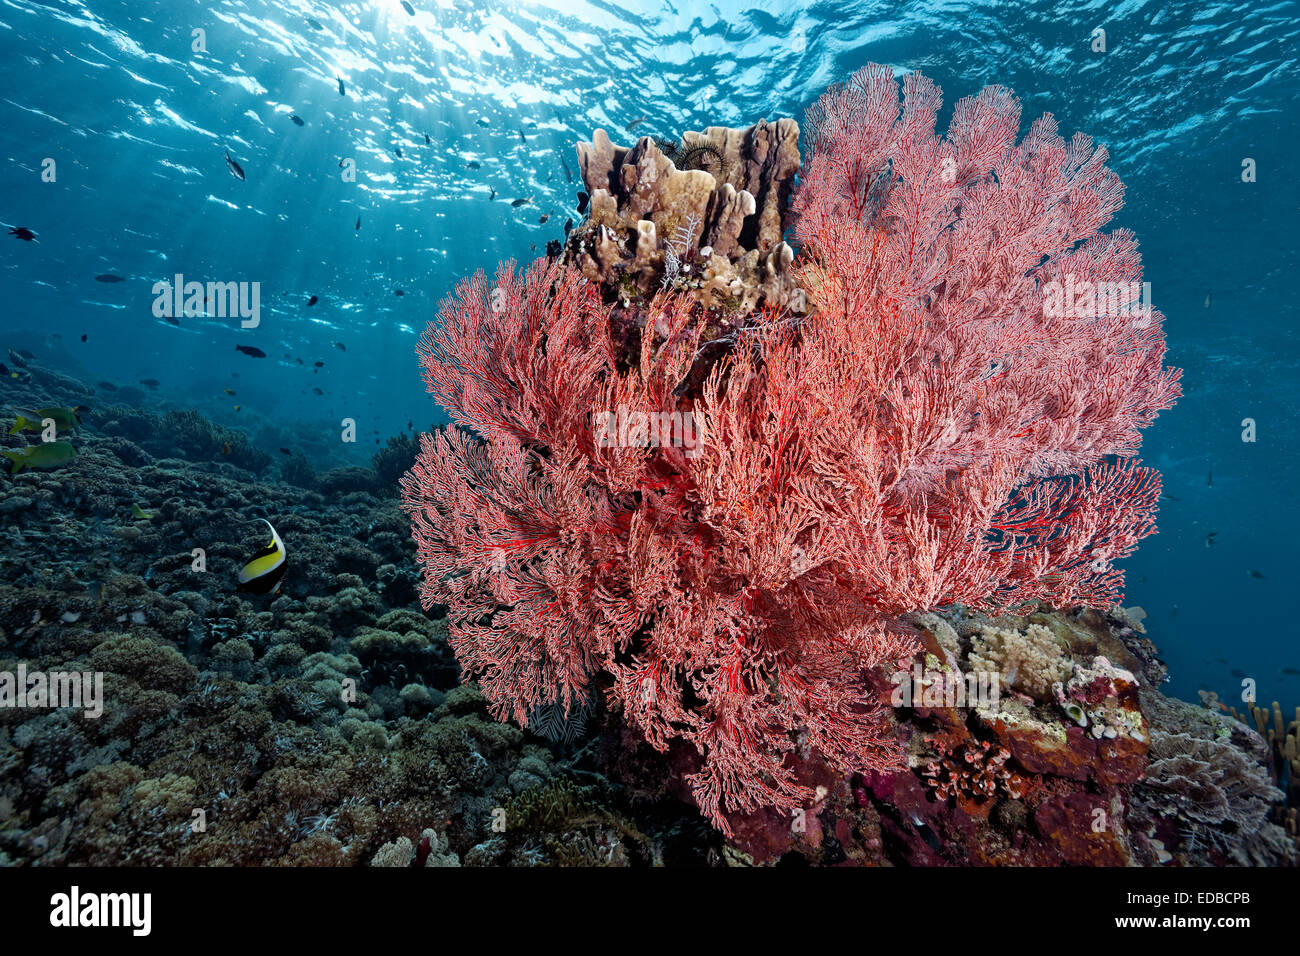 Coral reef drop to block with Knotted Fan Coral (Melithea ochracea), Great Barrier Reef, Pacific, Australia - Stock Image